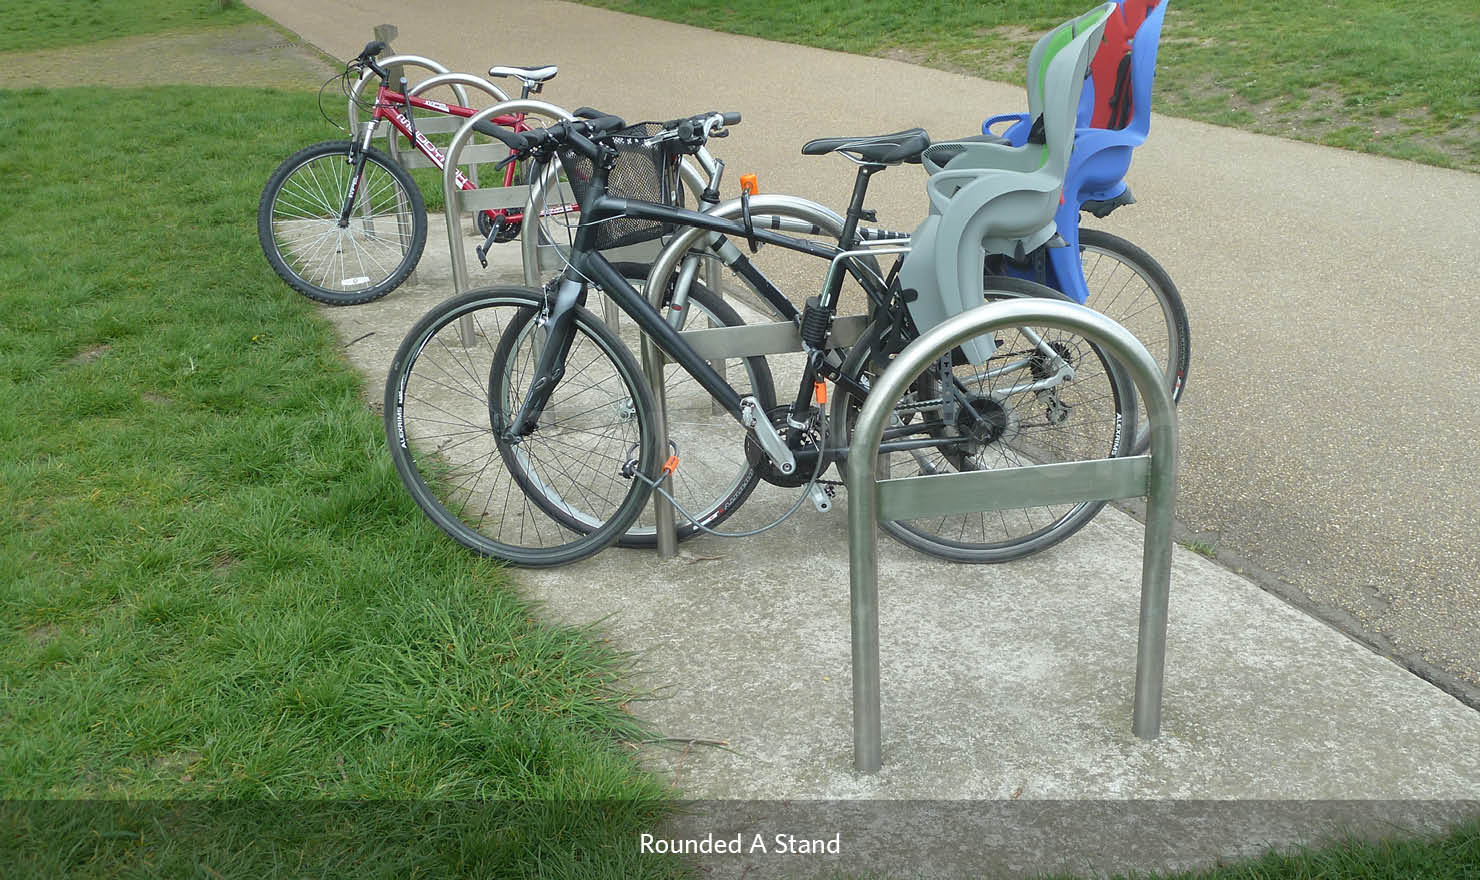 Rounded A Bike Stand